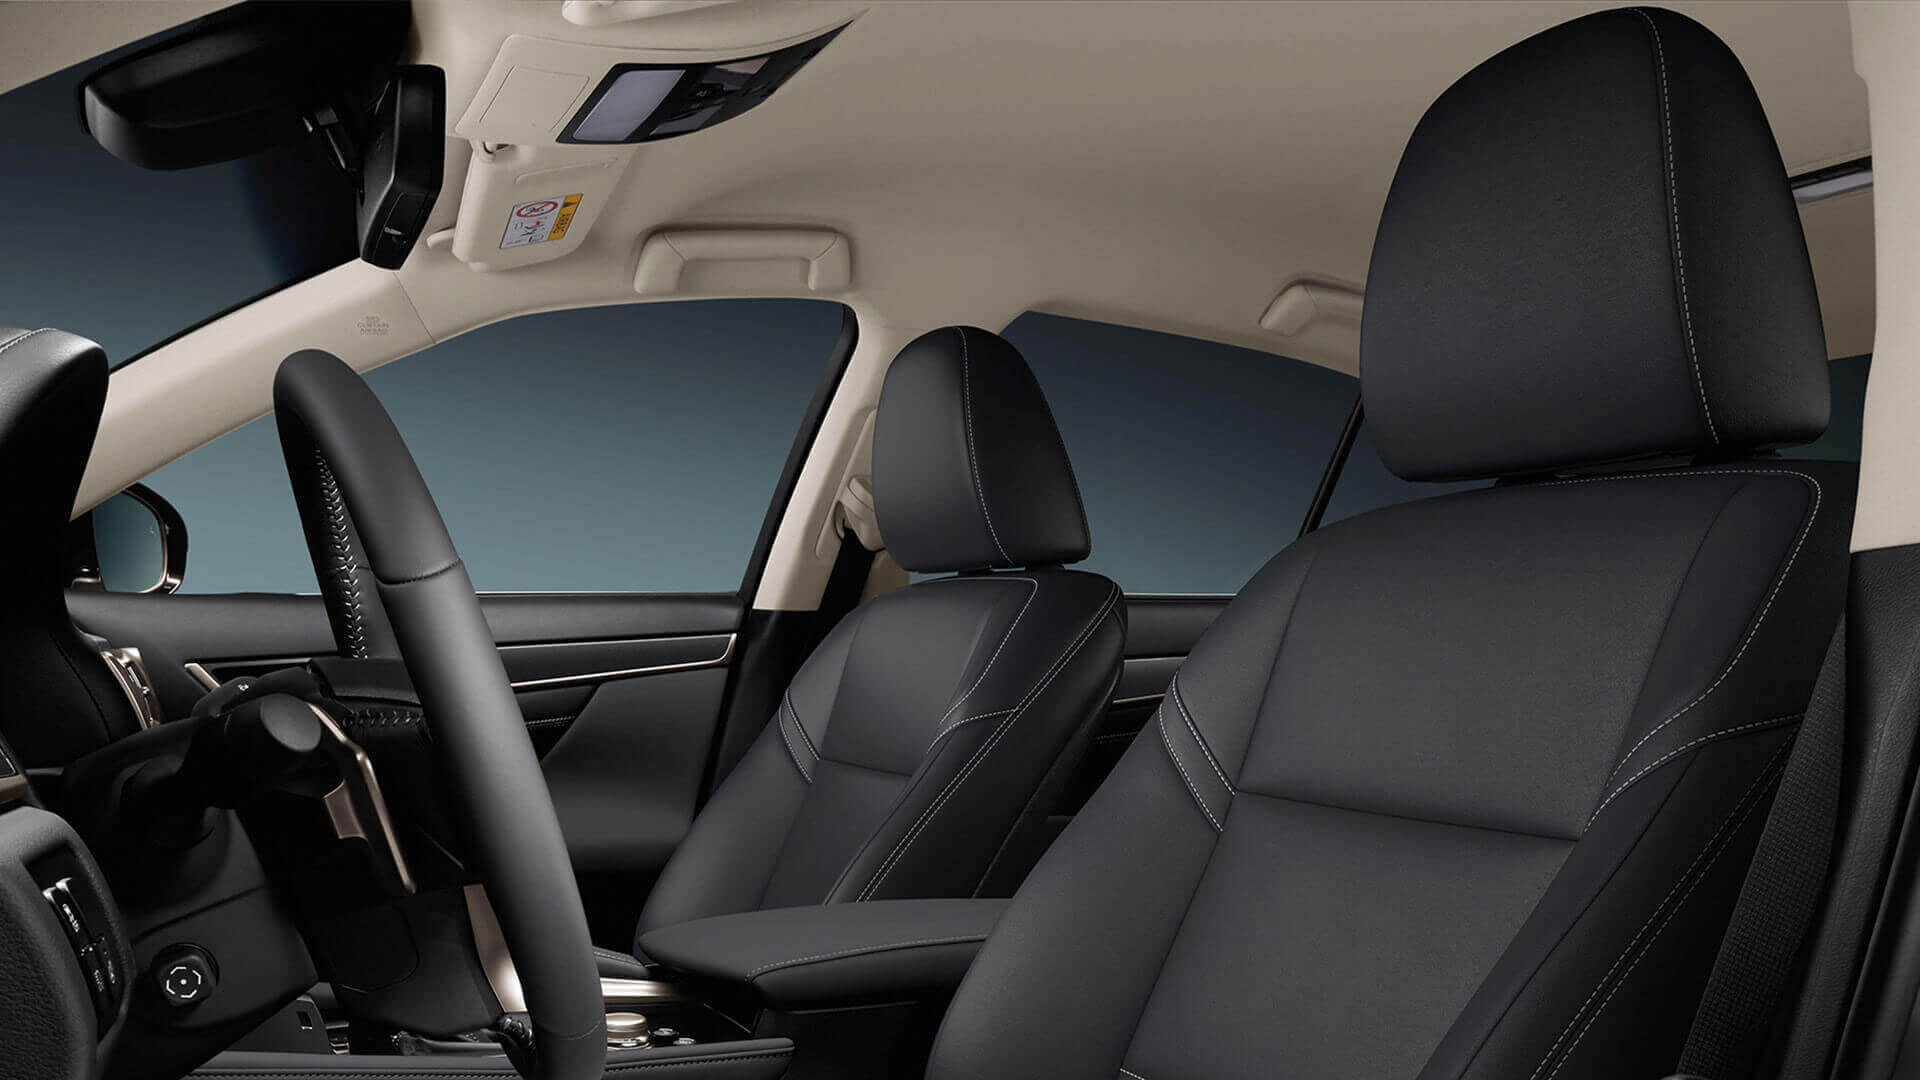 2016 lexus gs 450h features highly supportive seats